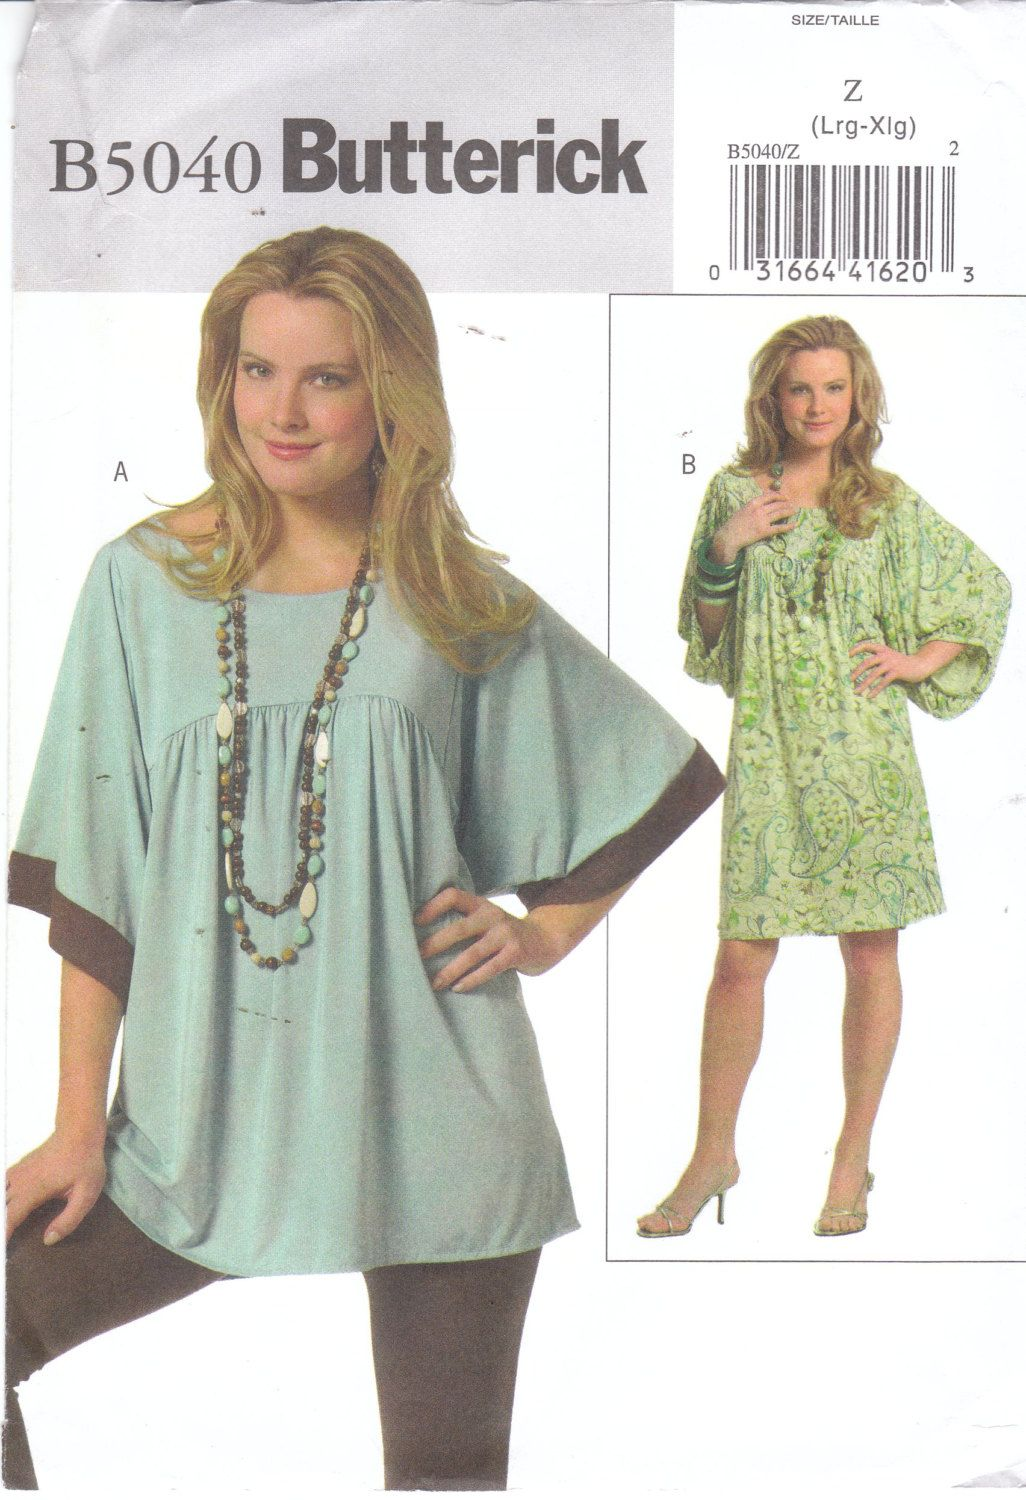 Easy sewing pattern for womens plus size loose fitting pullover easy sewing pattern for womens plus size loose fitting pullover stretch knit tunic top or jeuxipadfo Image collections